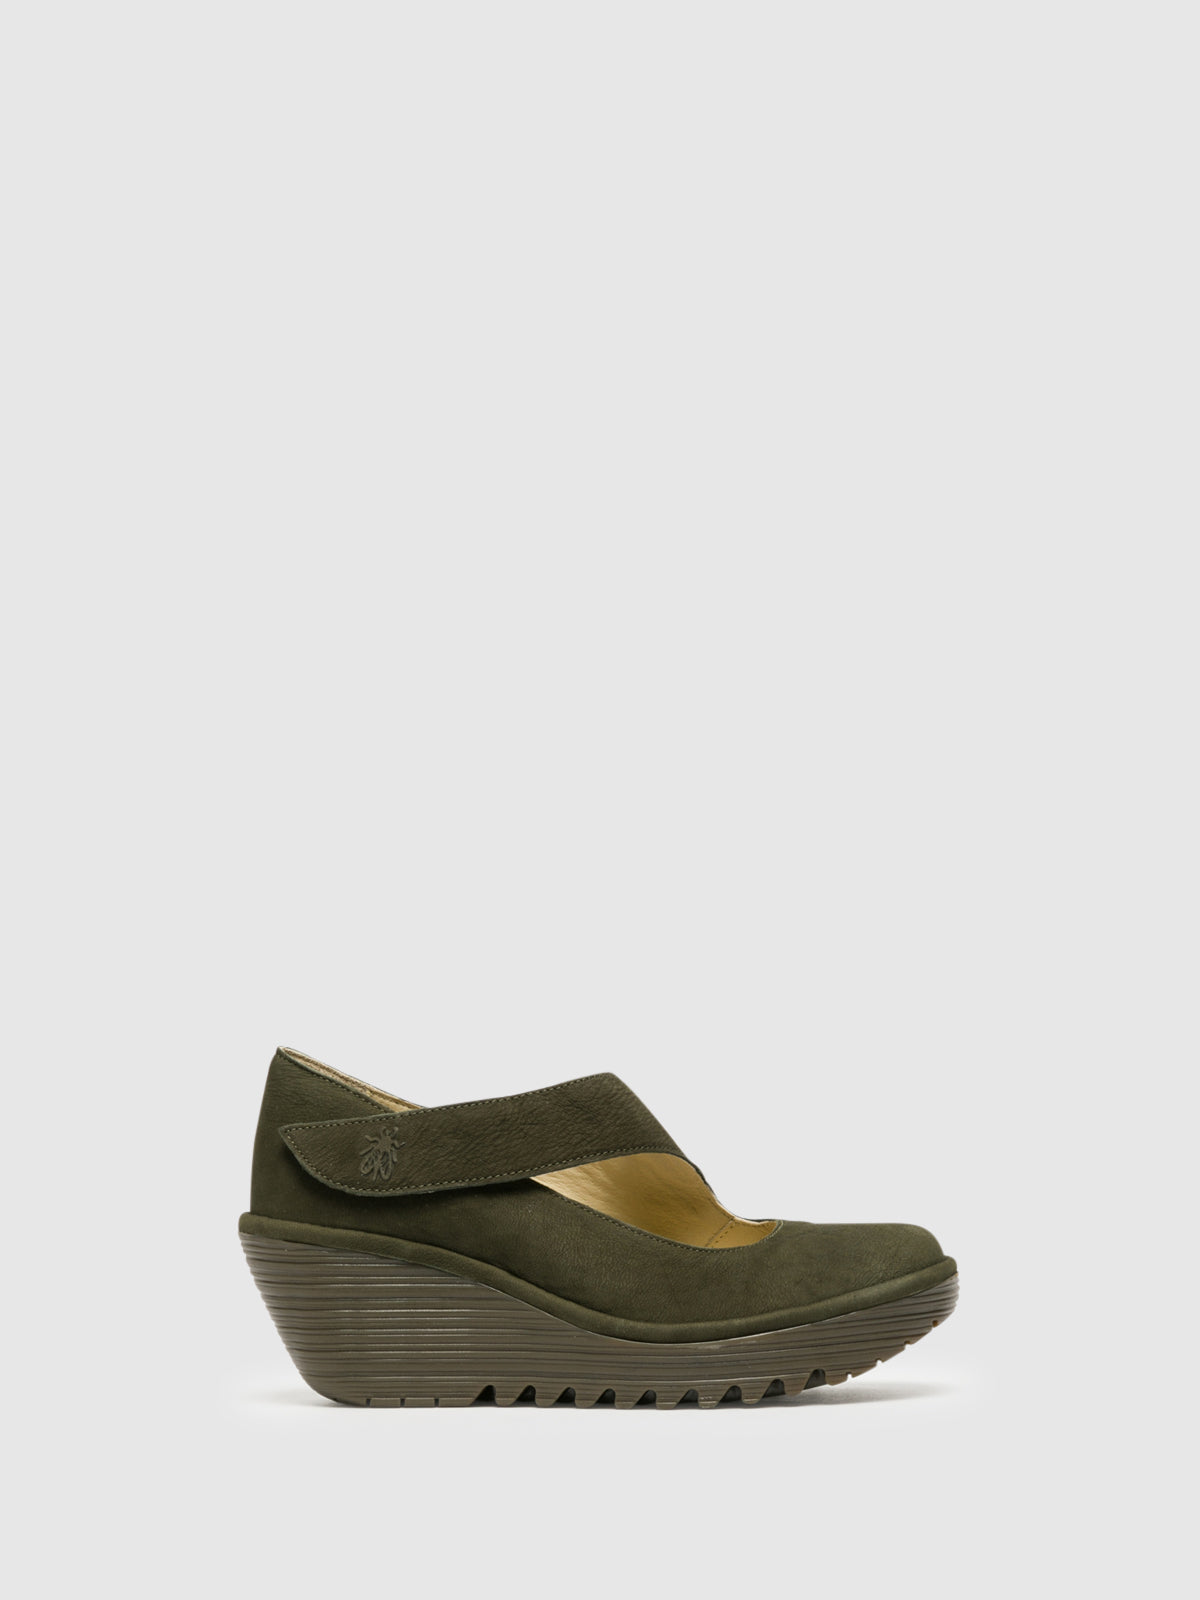 Fly London Brown Wedge Shoes